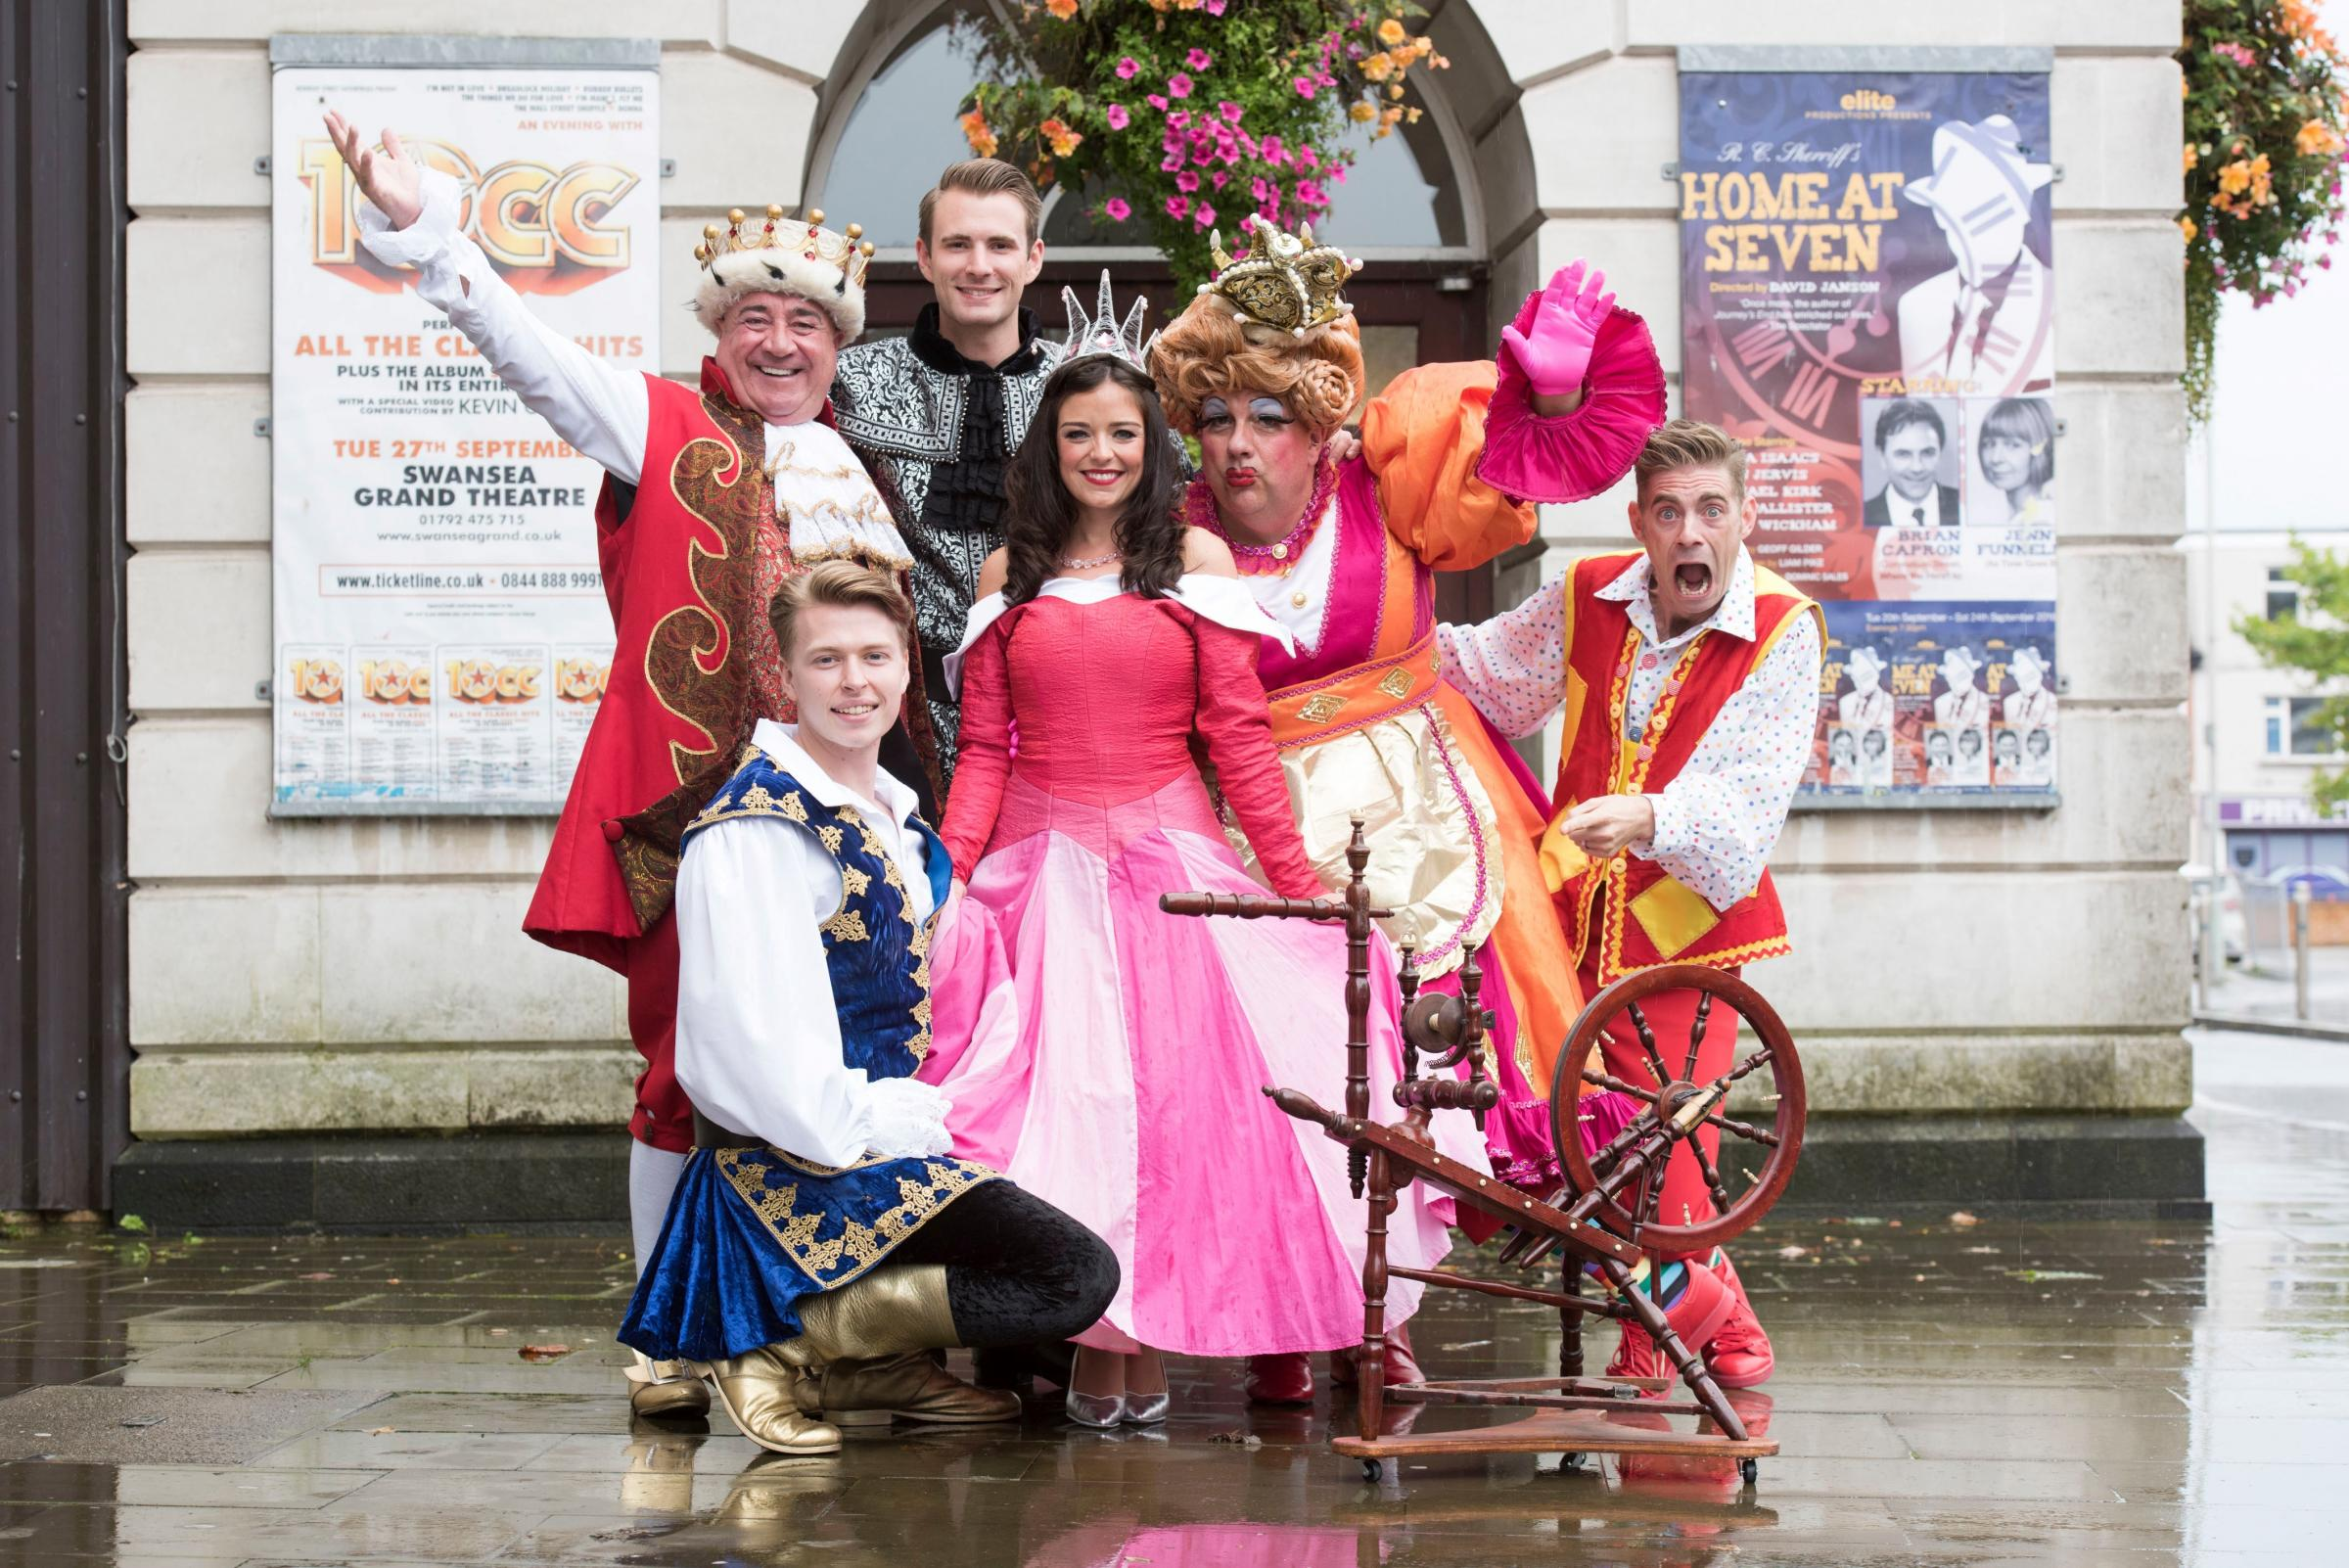 The cast of this year's Swansea Grand Theatre pantomime Sleeping Beauty